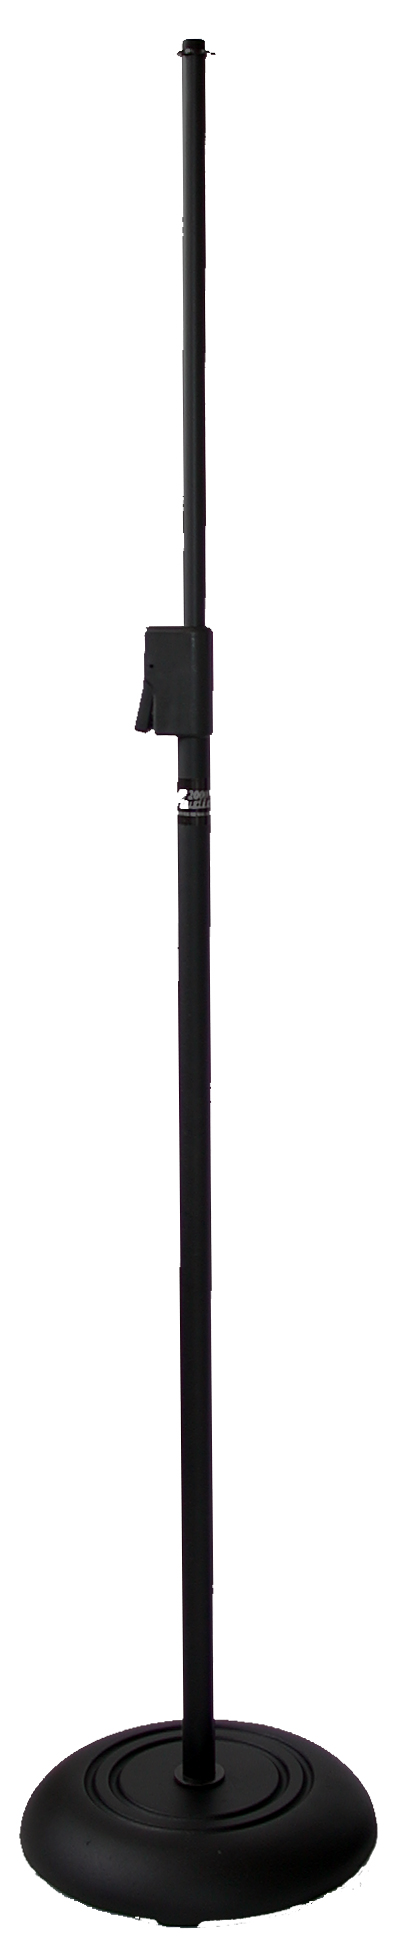 Audio 2000 Black, Finger-Push Mic. Stand With Cast-Iron Round Base (Ht: 33 1 or 2 - 61) AST4271B at Sears.com